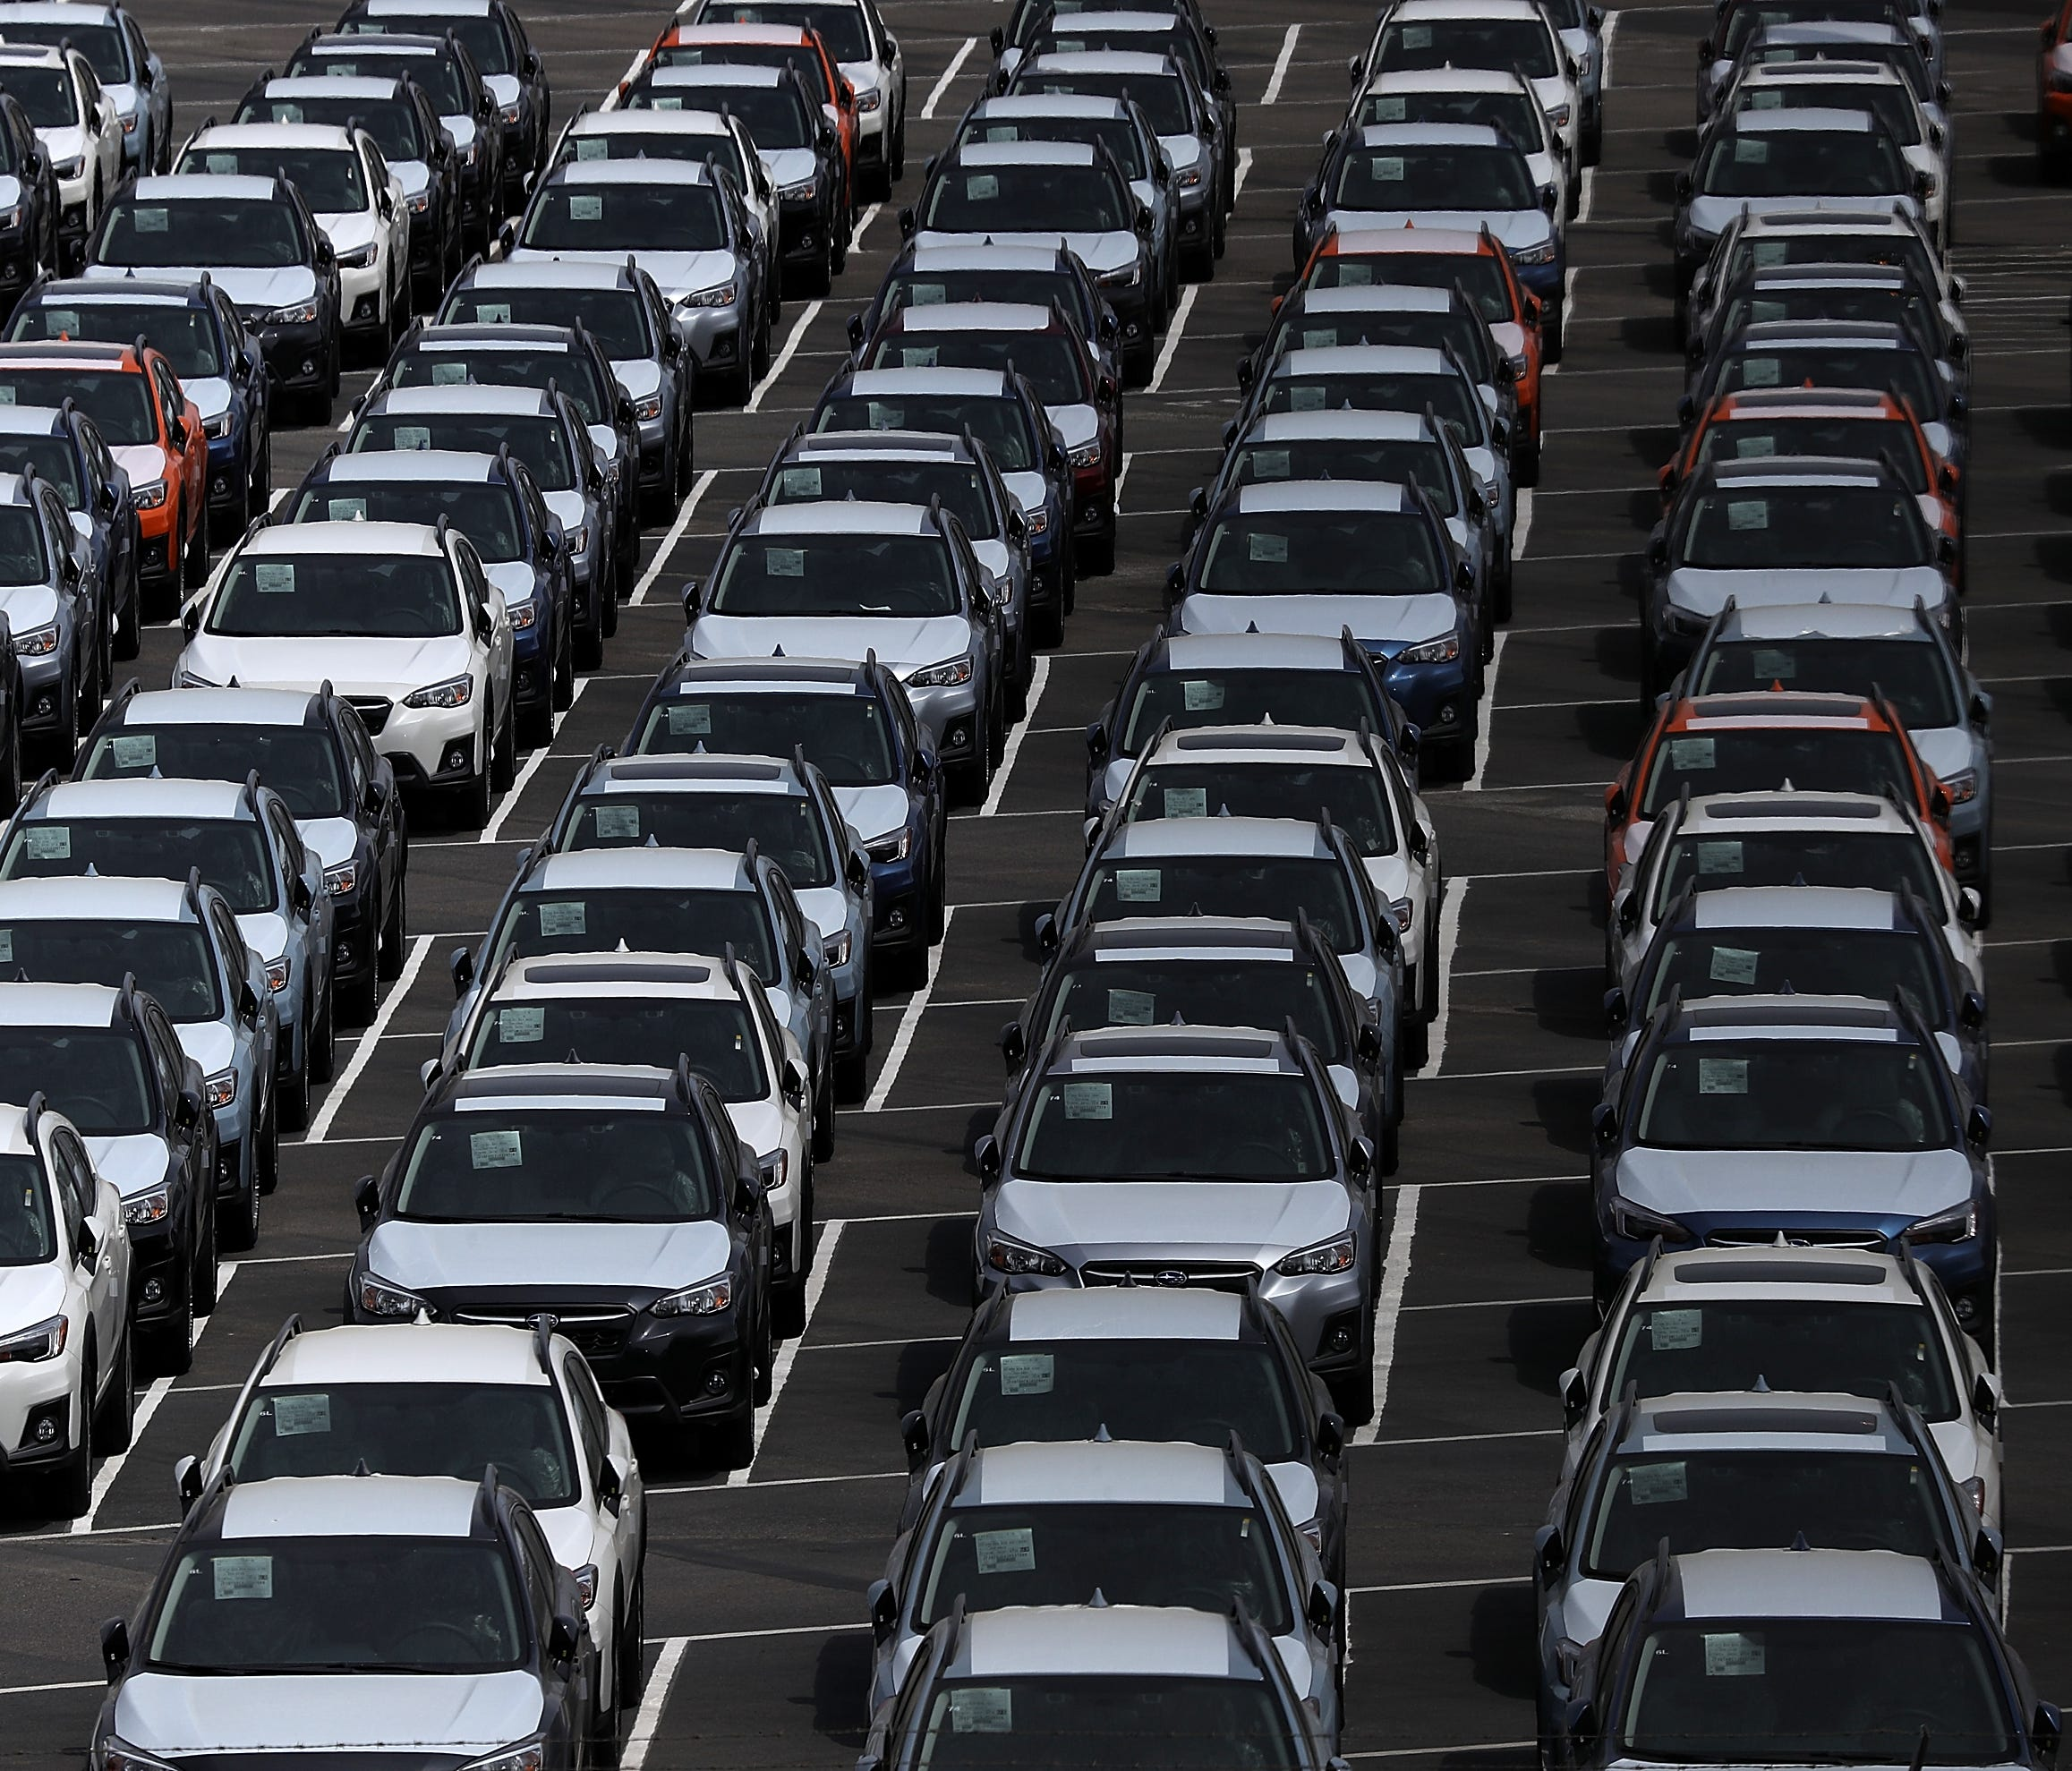 RICHMOND, CA - MAY 24:  Brand new cars sit in a lot at the Auto Warehousing Company near the Port of Richmond on May 24, 2018 in Richmond, California.  U.S. president Donald Trump is threatening to impose heavy tariffs on auto imports and has directe